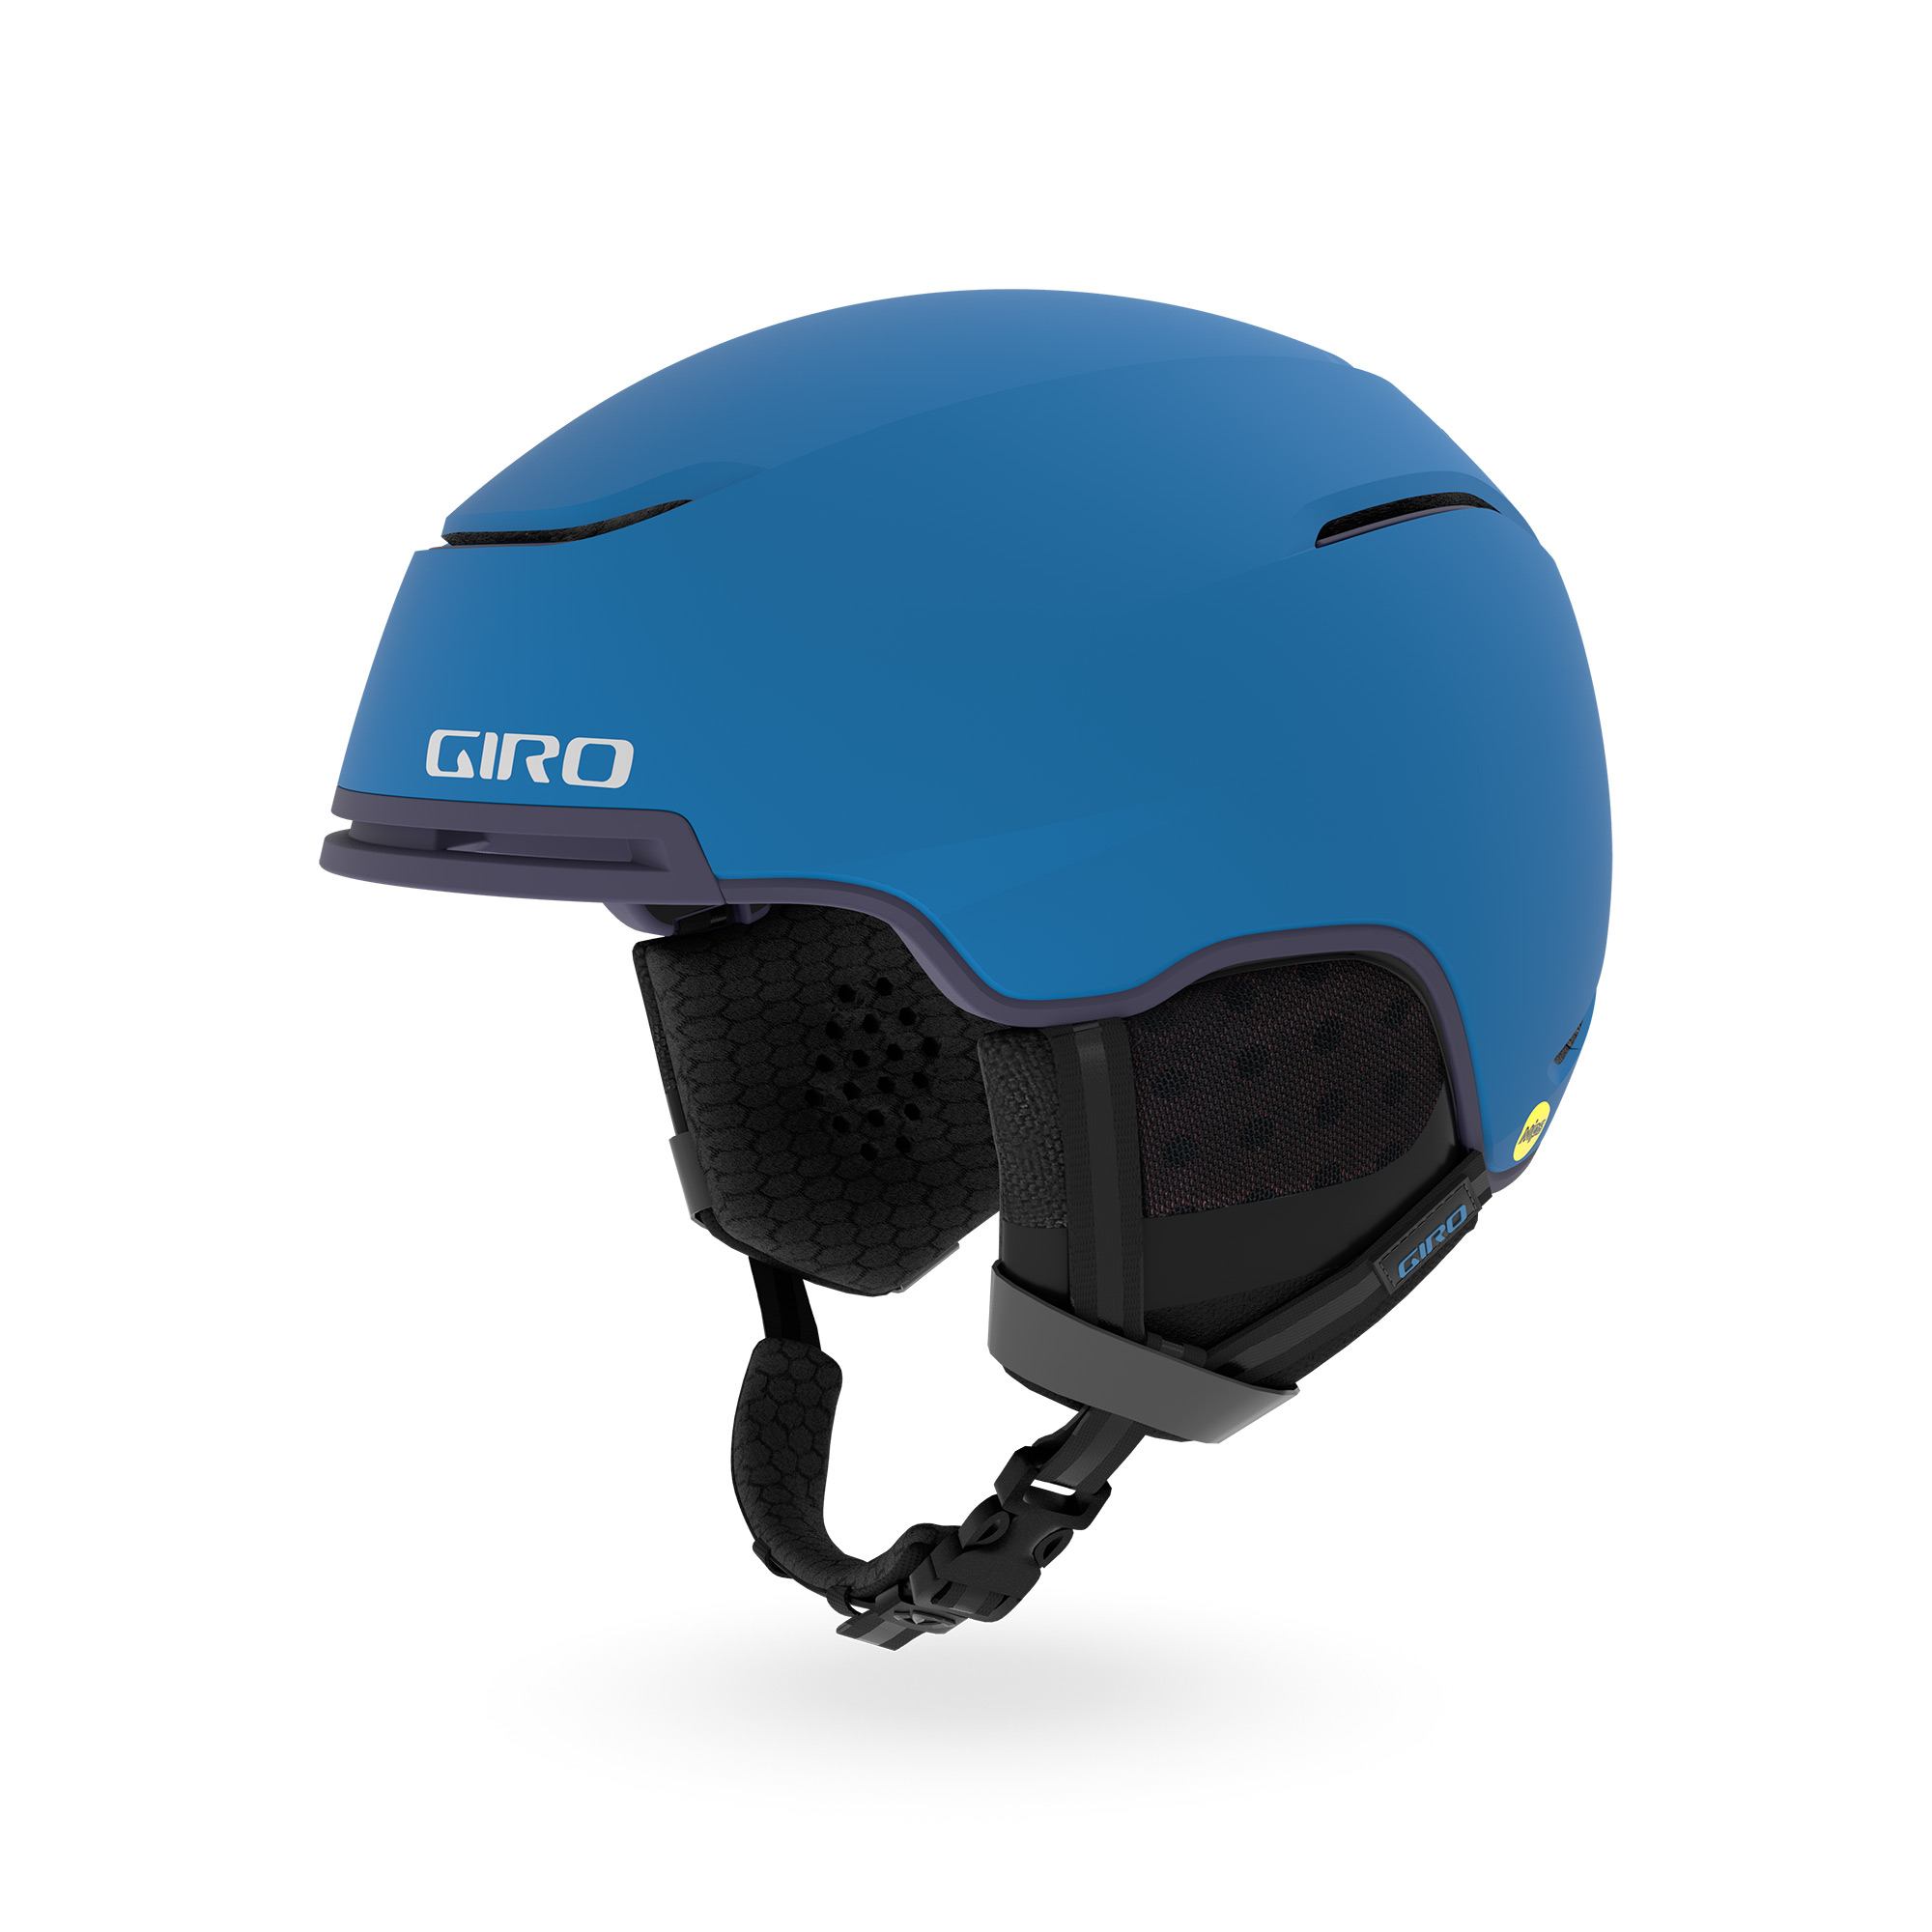 giro-jackson-mips-mountain-snow-helmet-matte-blue-protect-our-winters-hero.jpg